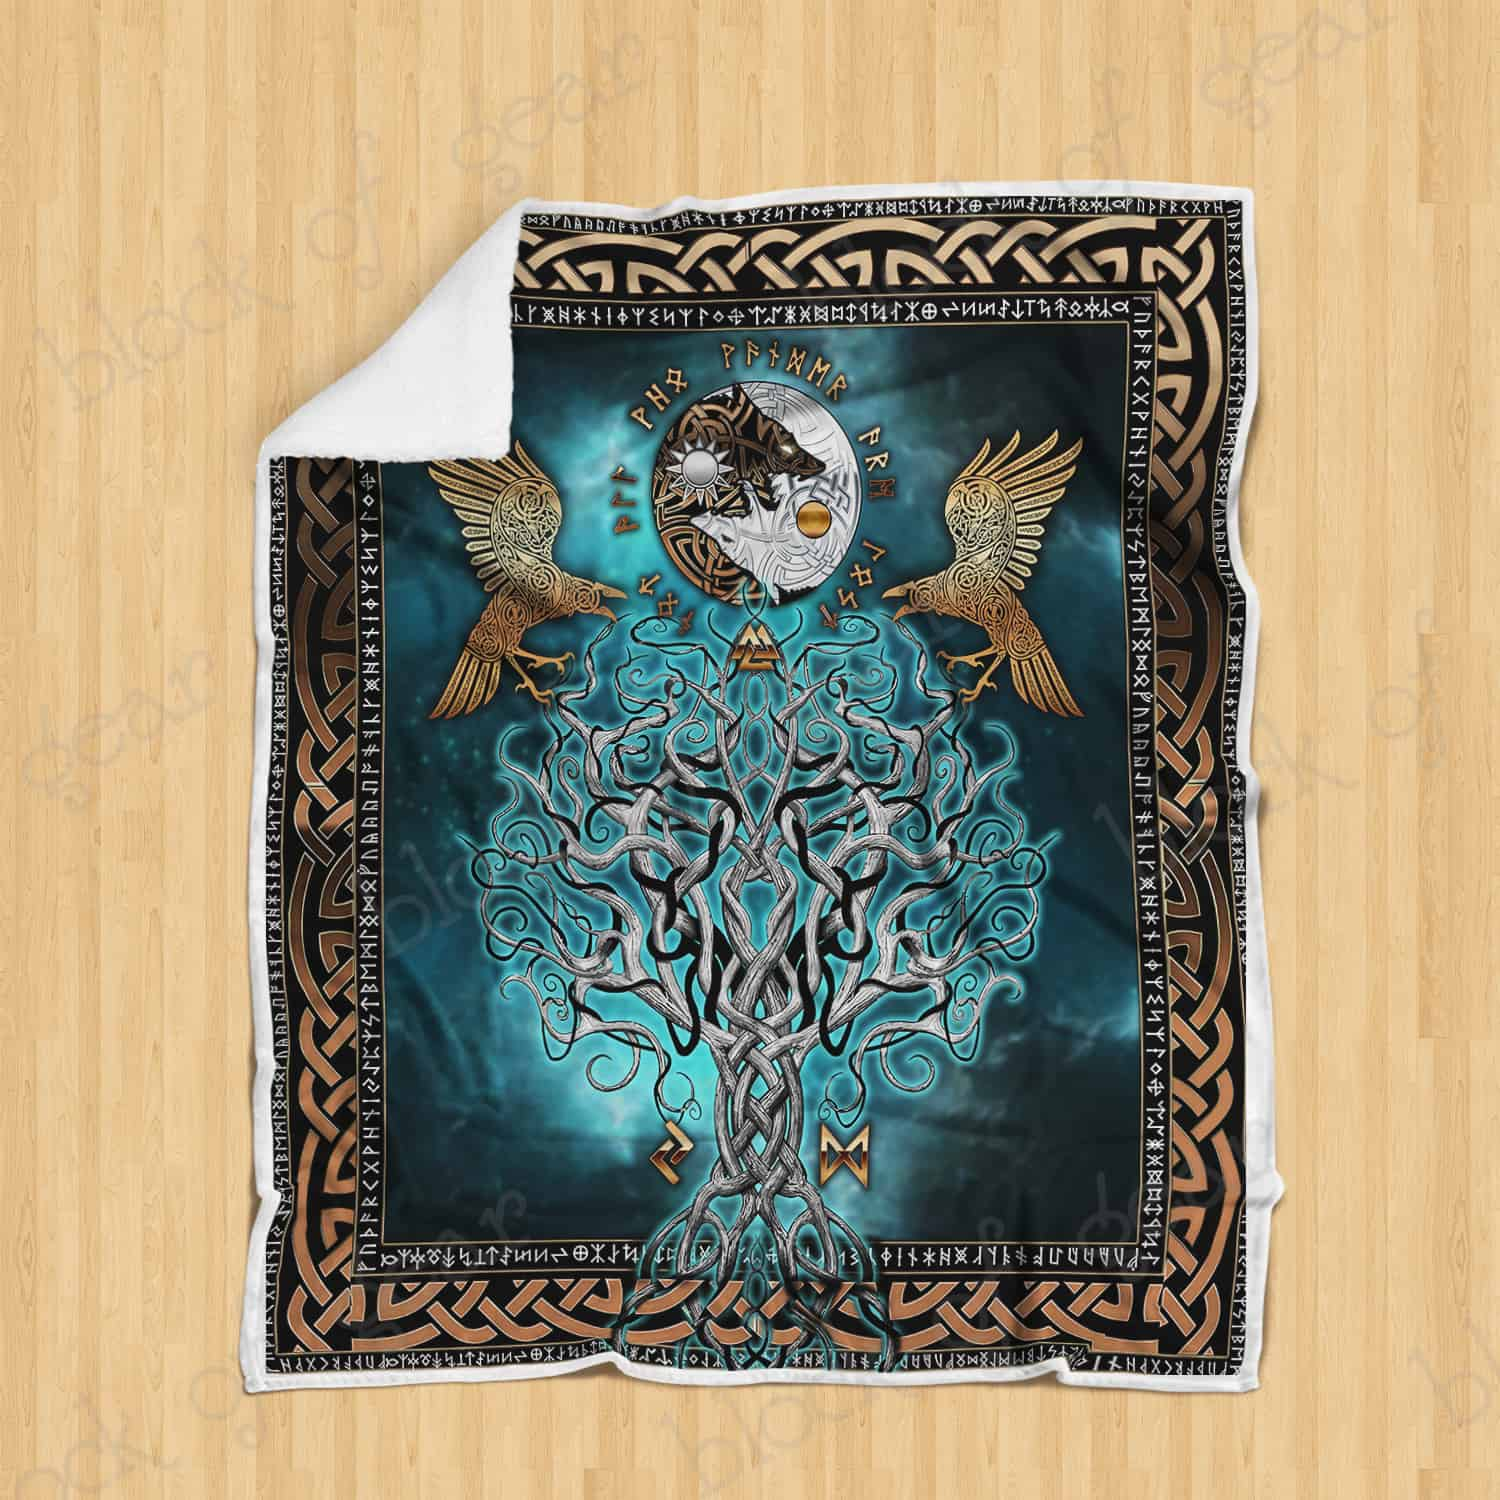 compass yggdrasil viking all over printed blanket 3